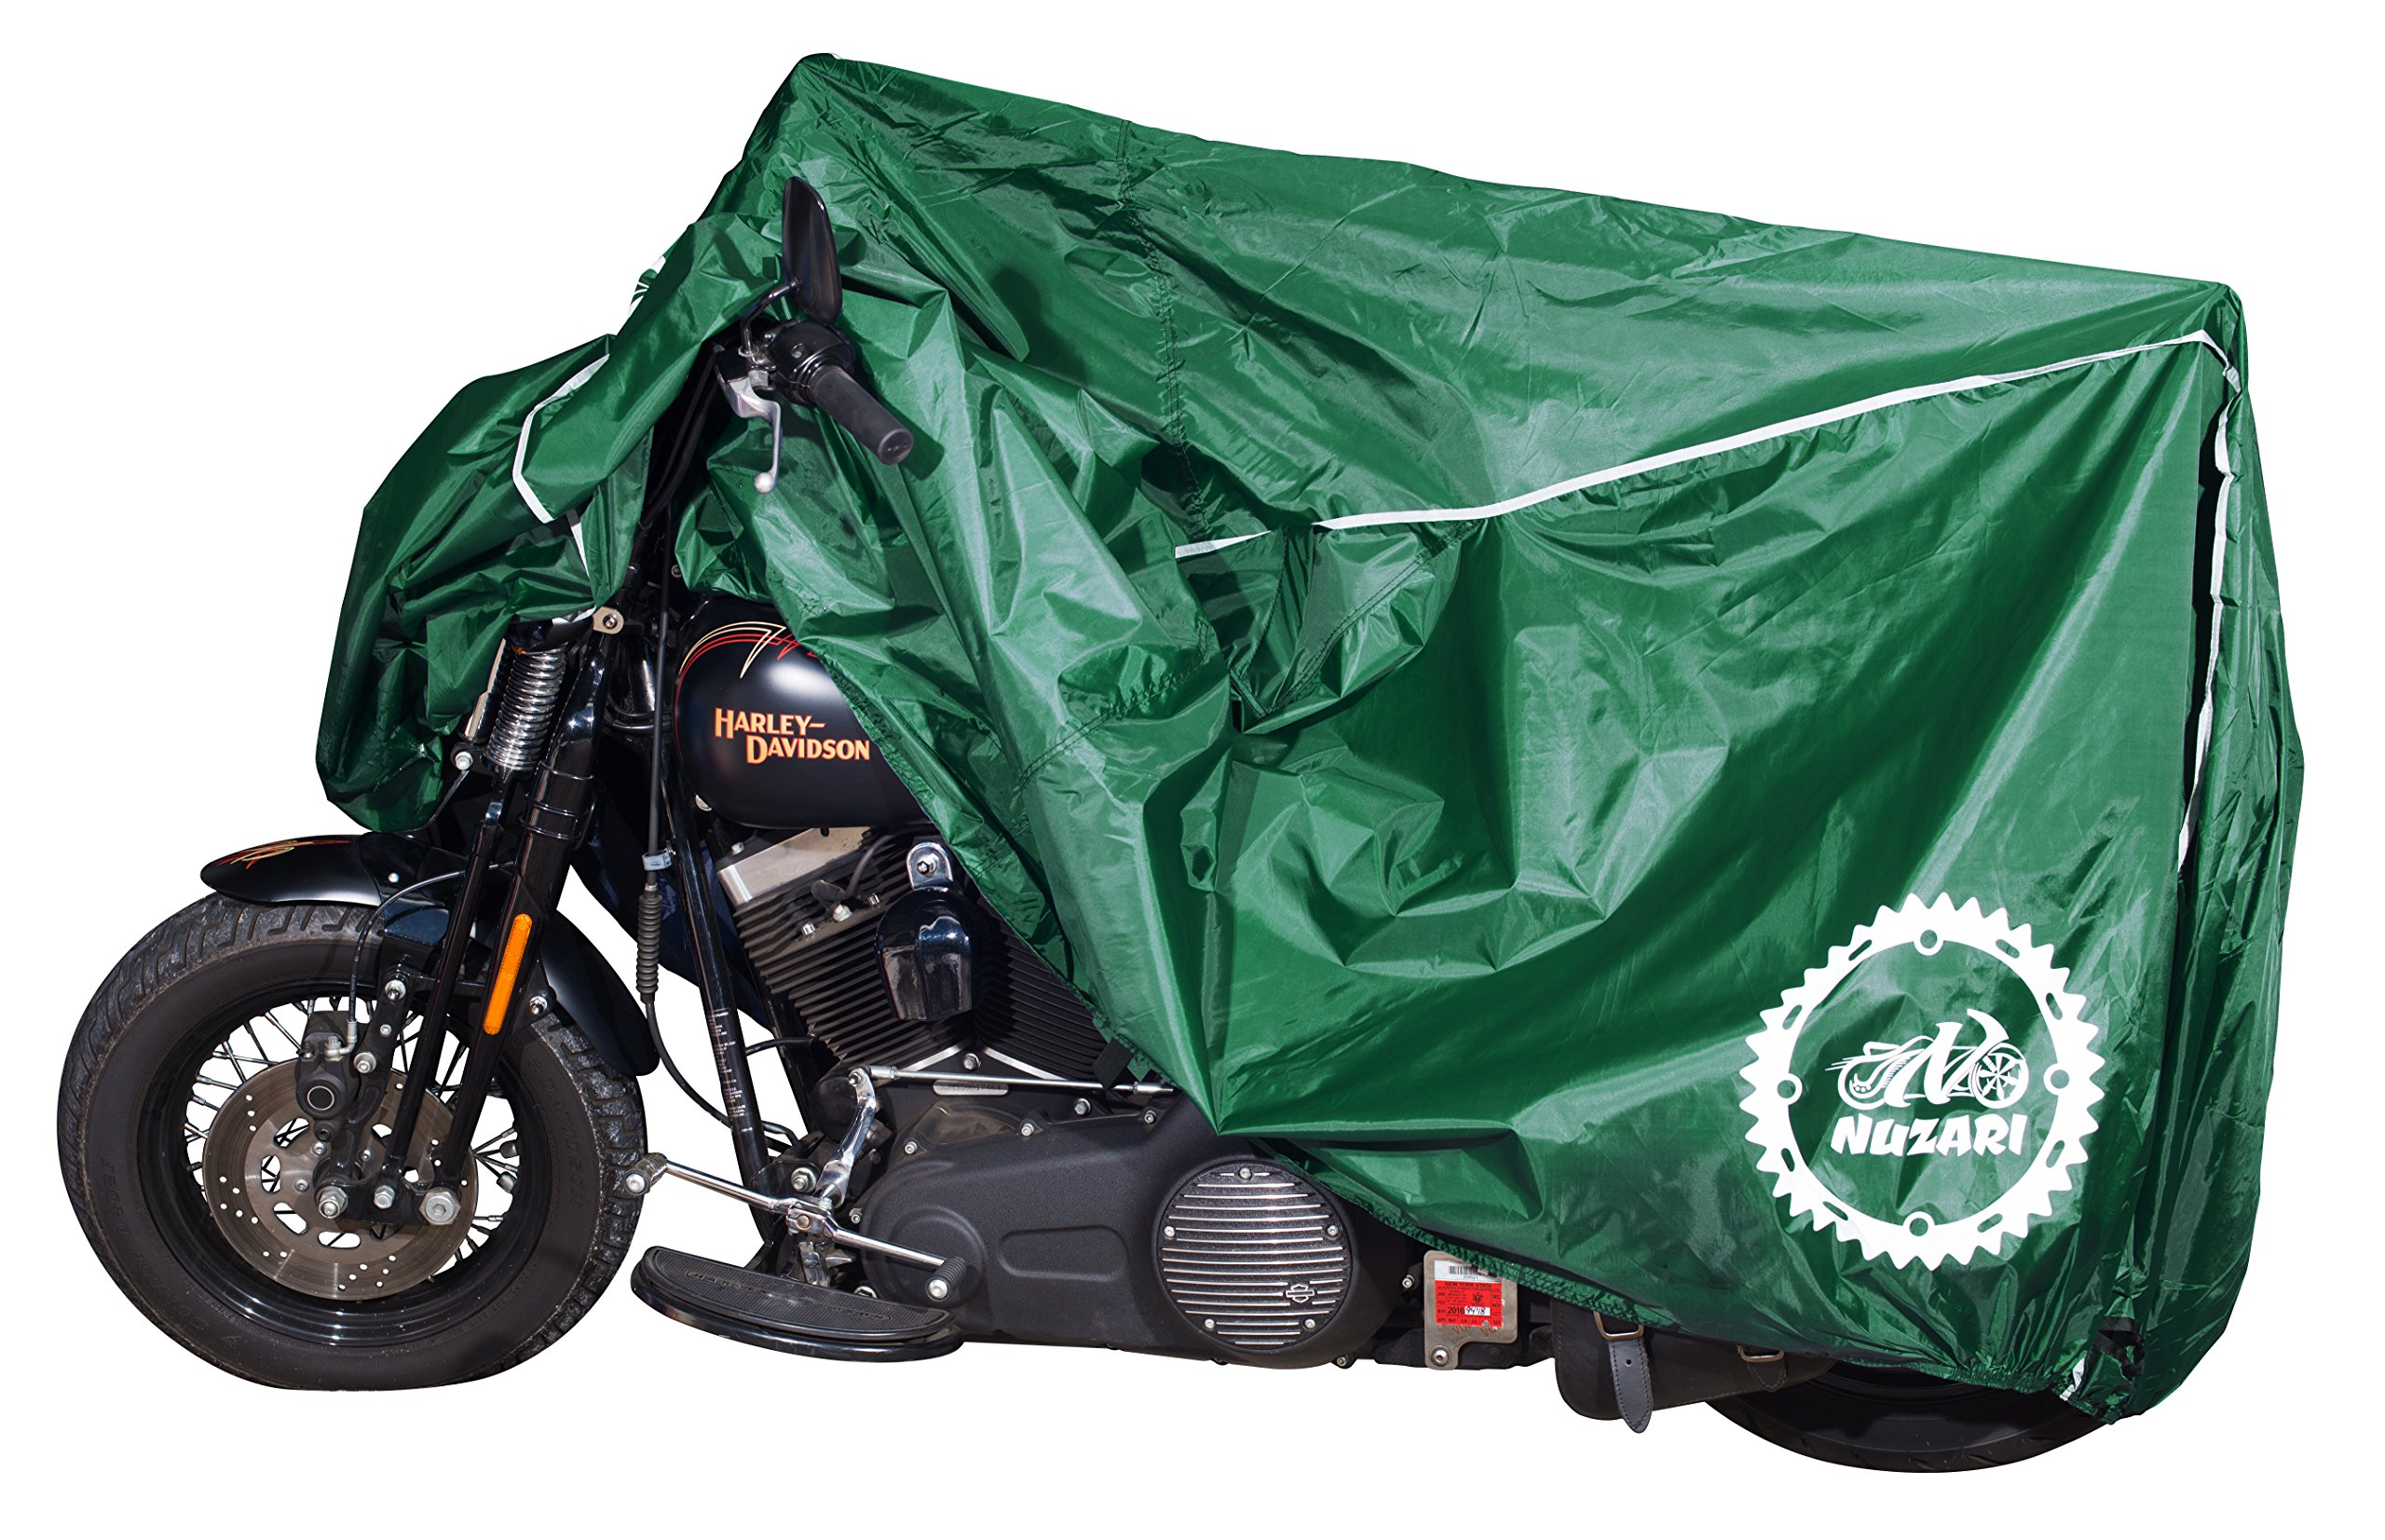 Premium Weather Resistant Covers Waterproof Polyester w/Soft Screen & Heat Resistant Shields.Motorcycle Cover has Lockable fabric, Durable & Long Lasting.Sportbikes & Cruisers (XX-large, Hunter Green)